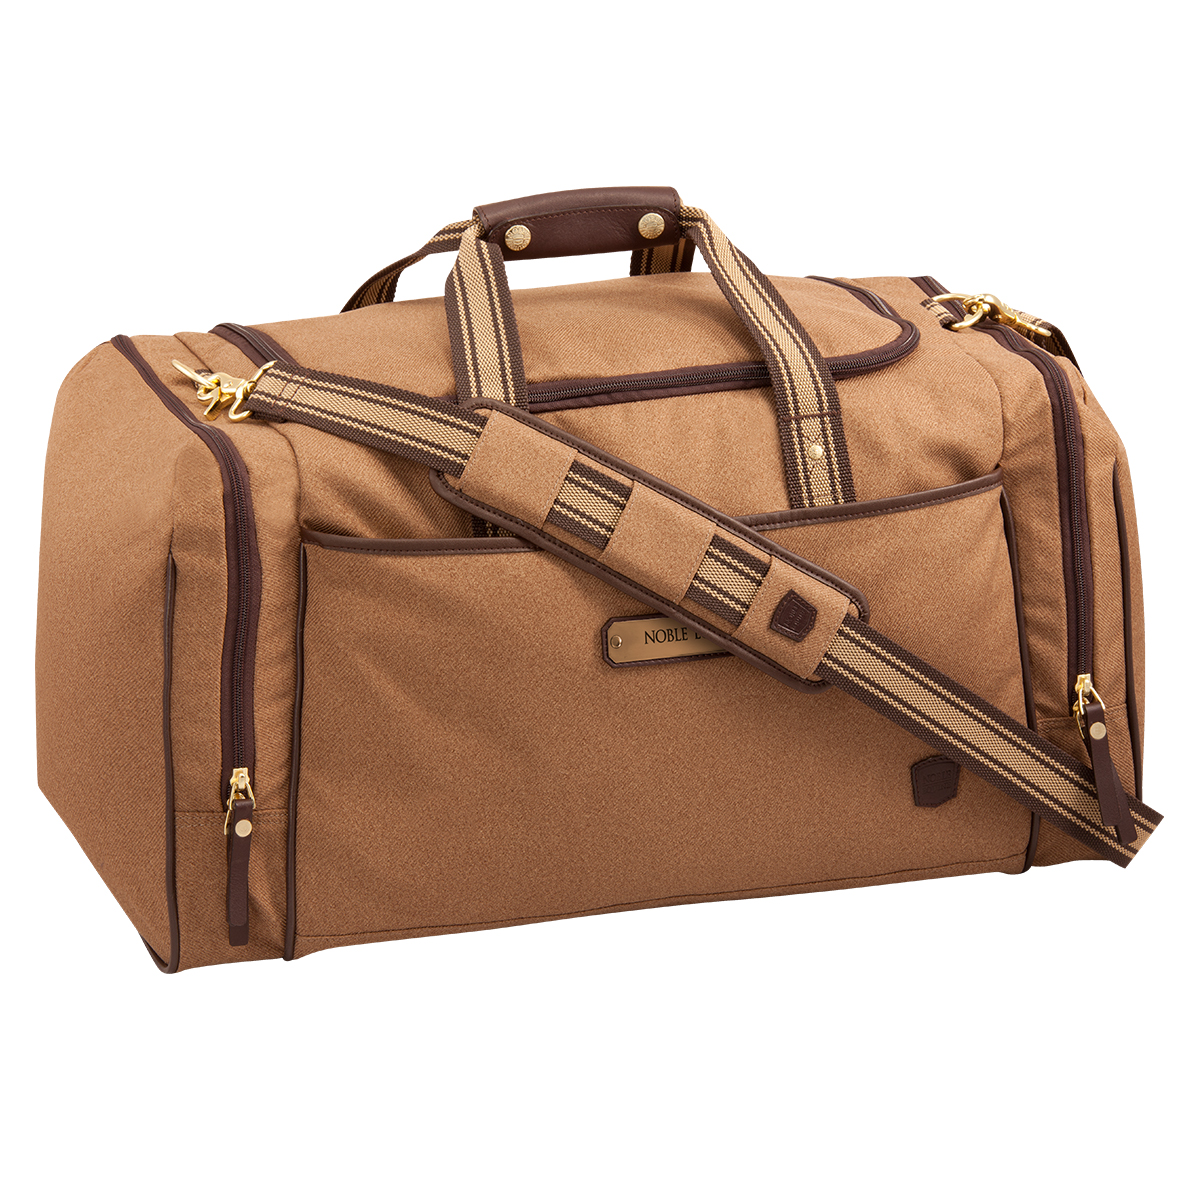 Noble Outfitters Signature Duffle